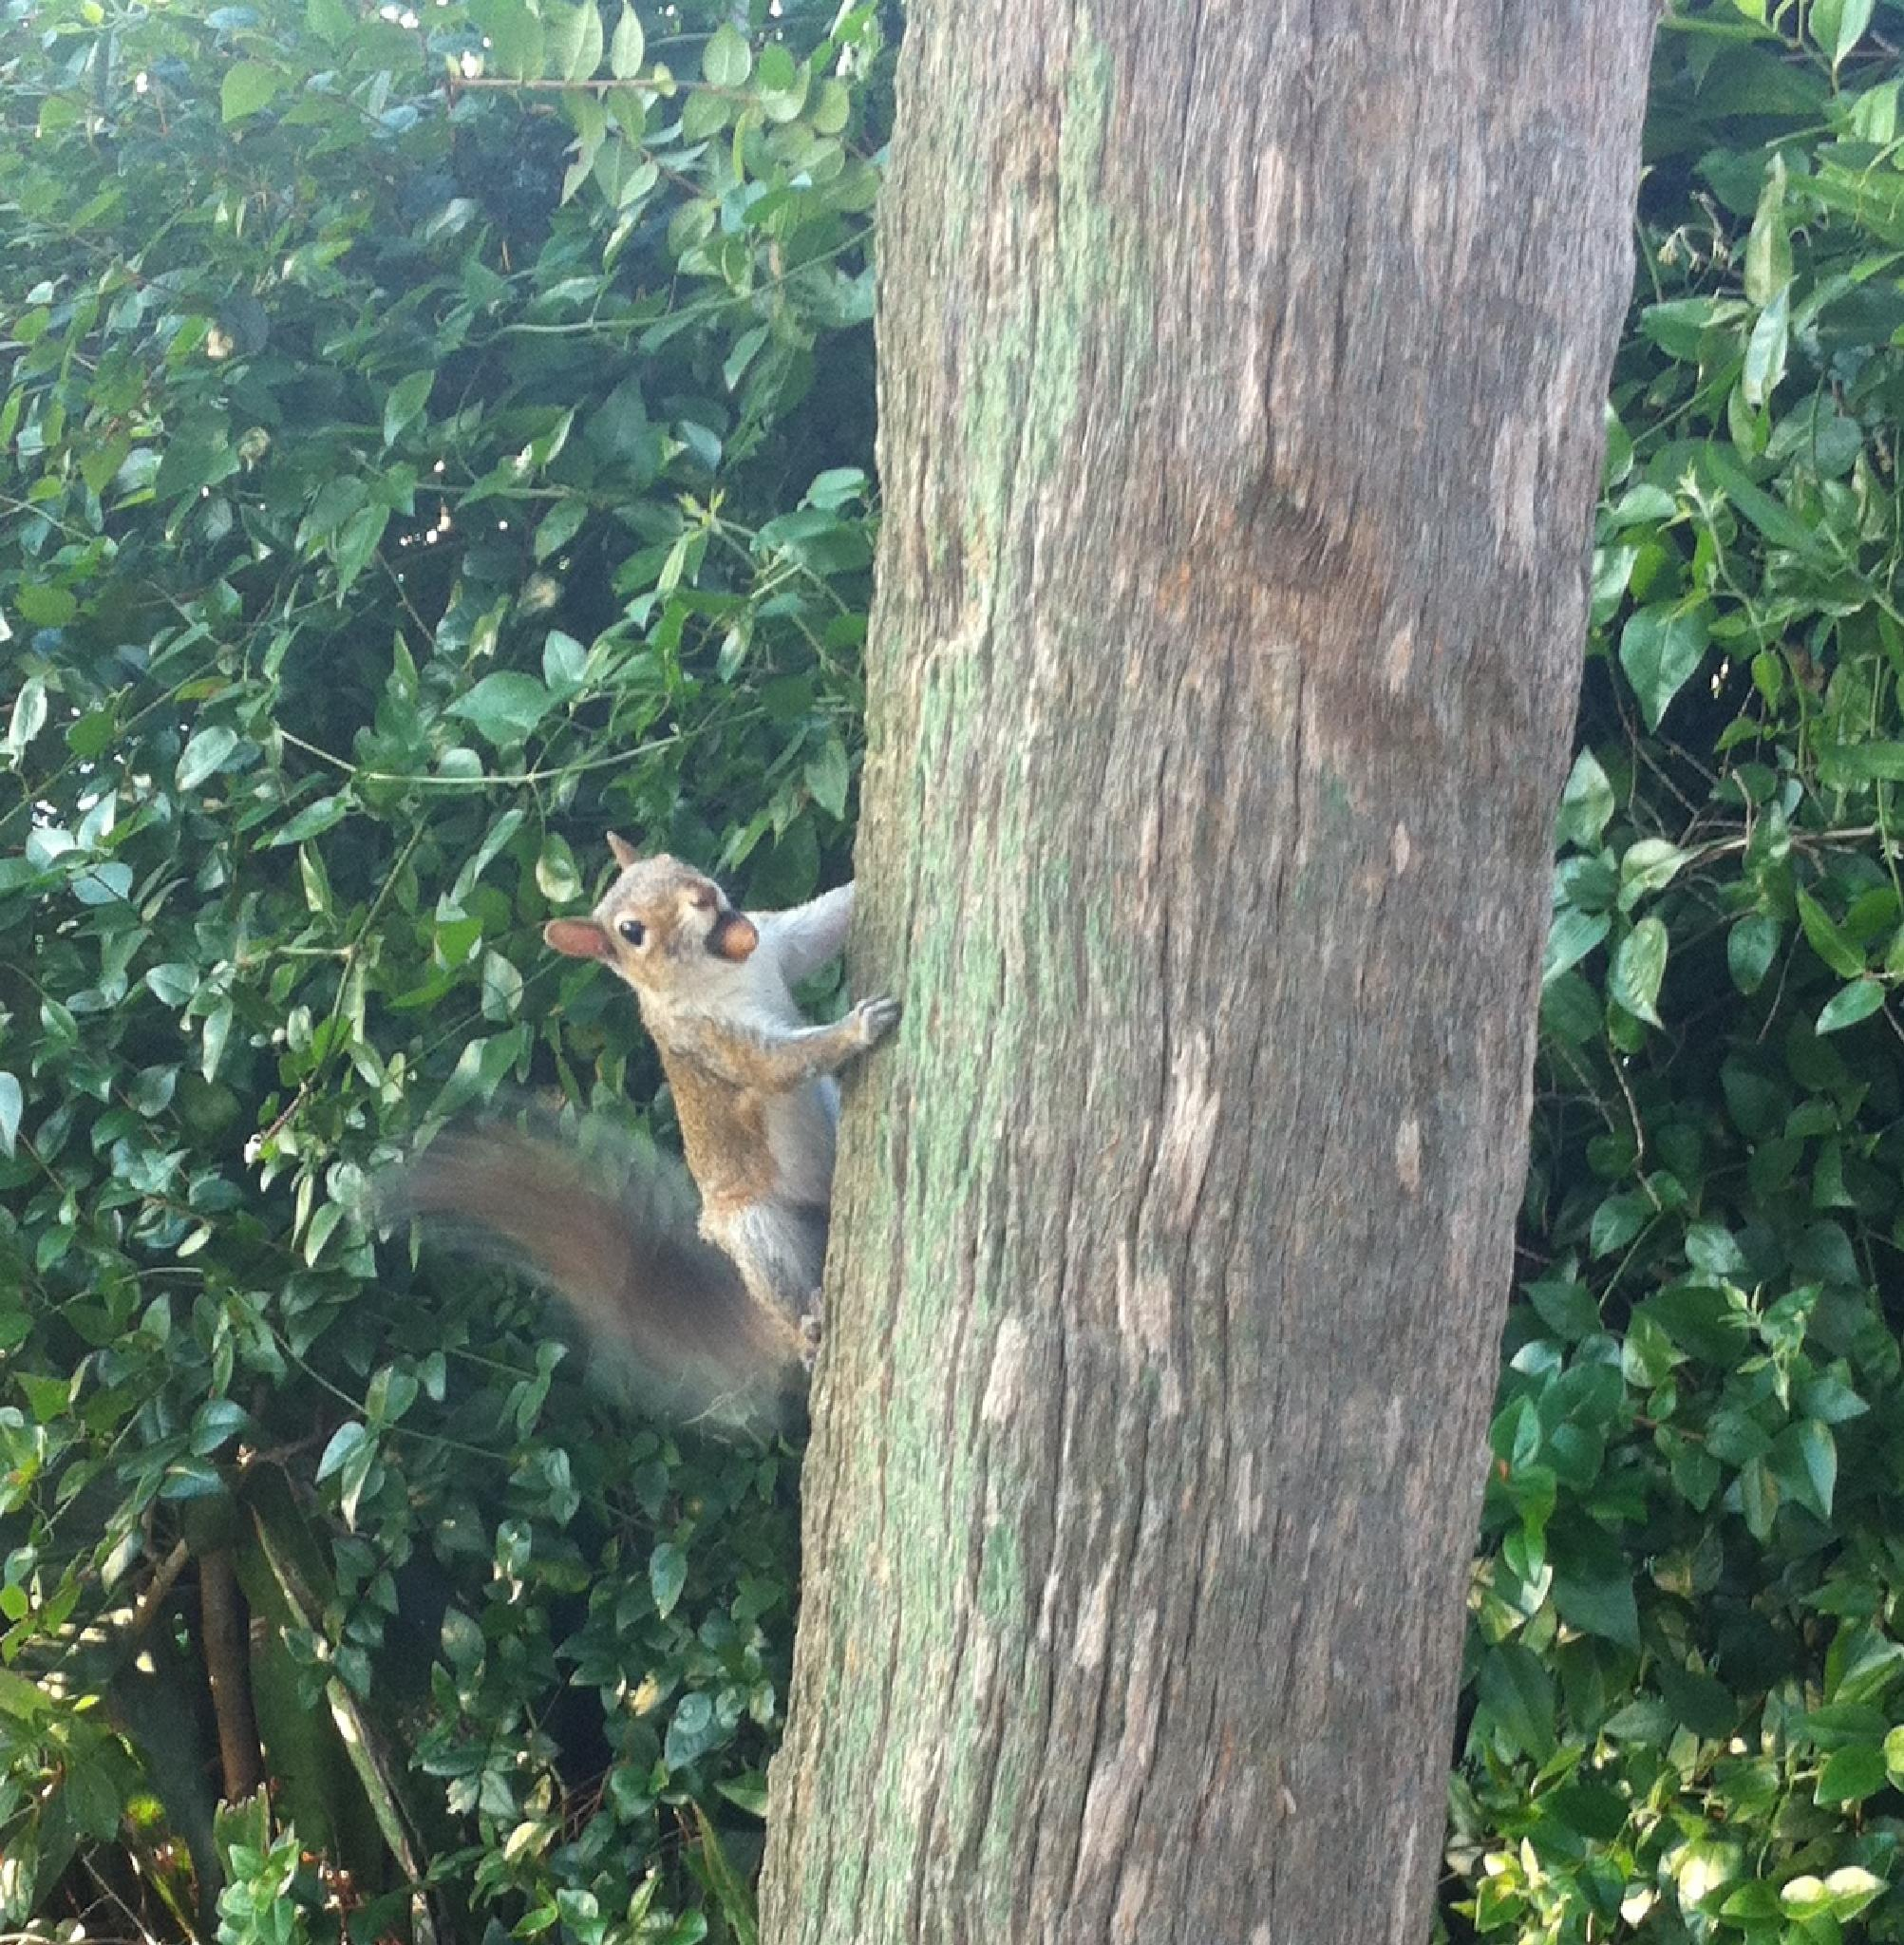 Squirrel with Nut in it's mouth Shaking Tail by Victoria Gallagher